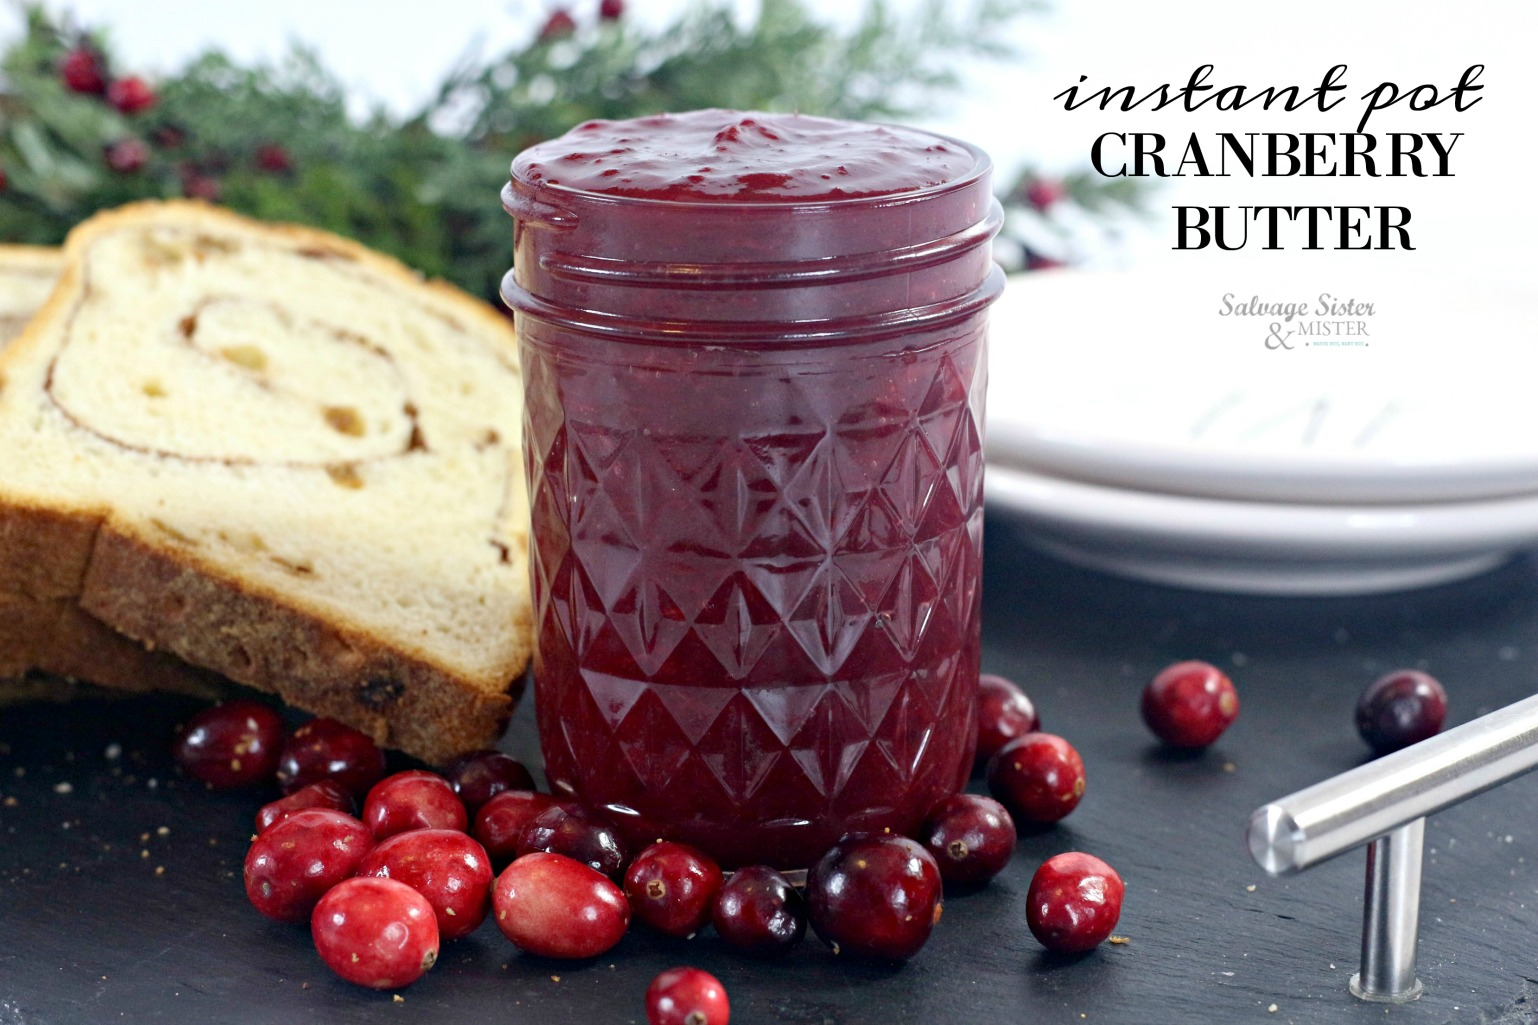 Recipe - instant Pot Cranberry butter. Great for Christmas morning, to give a a gift, breakfast, or thanksgiving table. Find on salvagesisterandmister.com